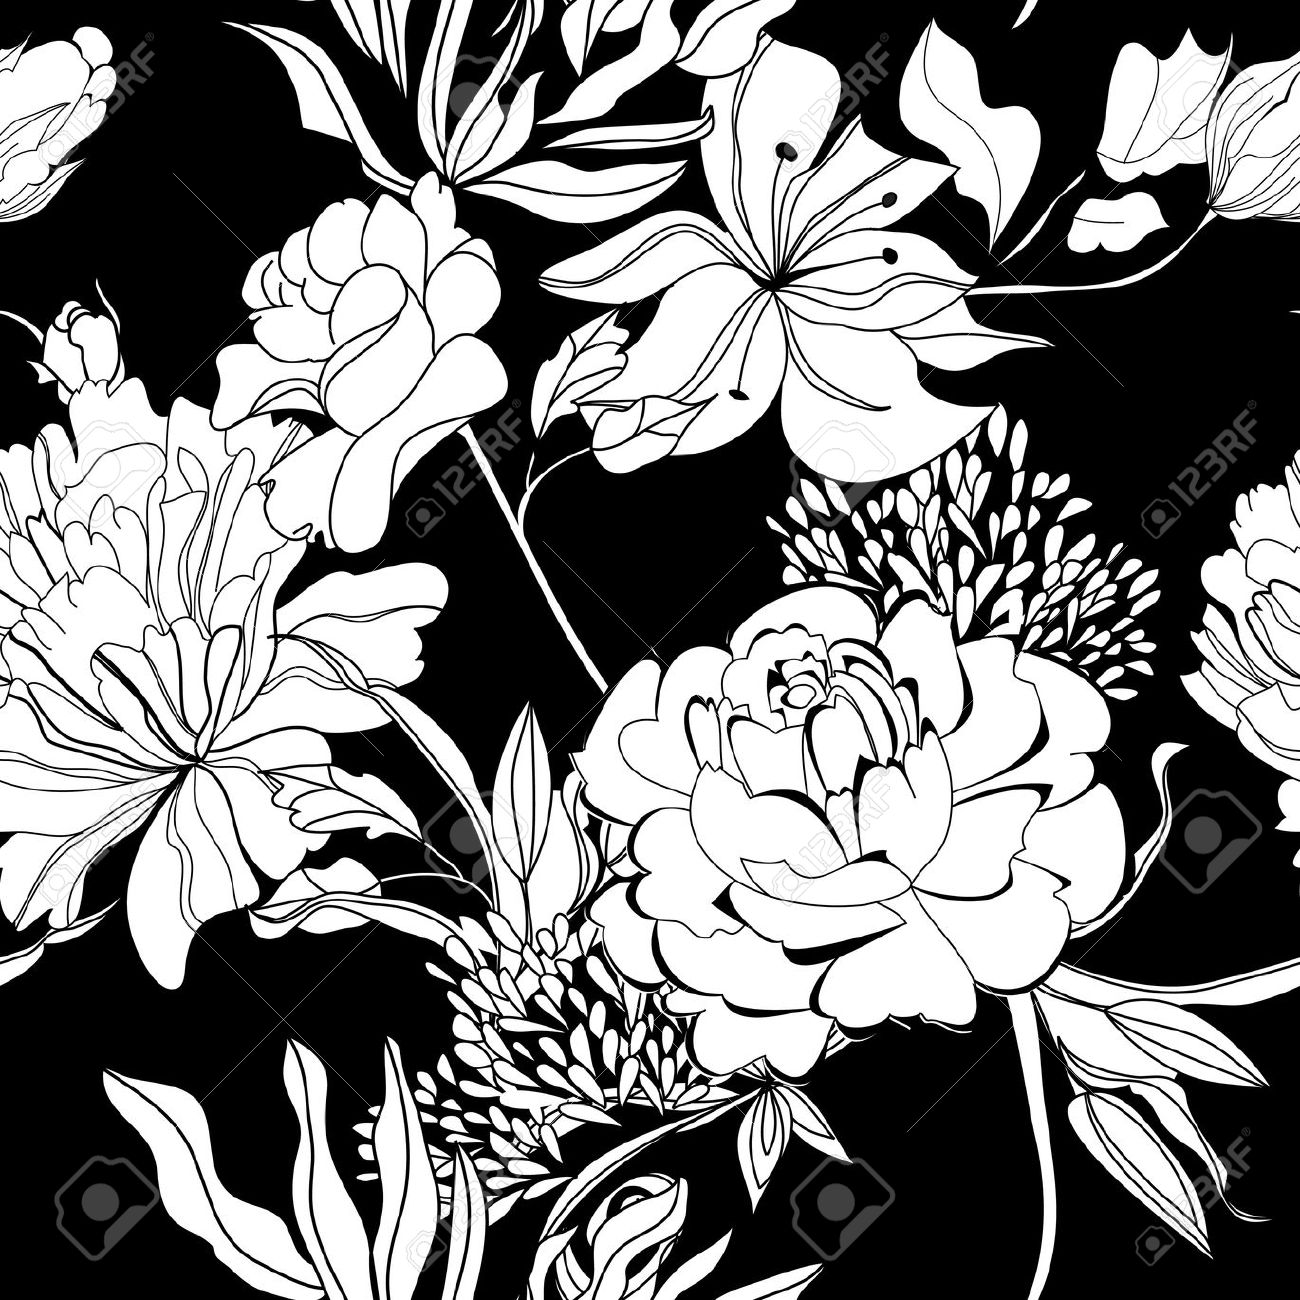 Flowers drawing black and white at getdrawings free for 1300x1300 black wallpaper with white flowers mightylinksfo